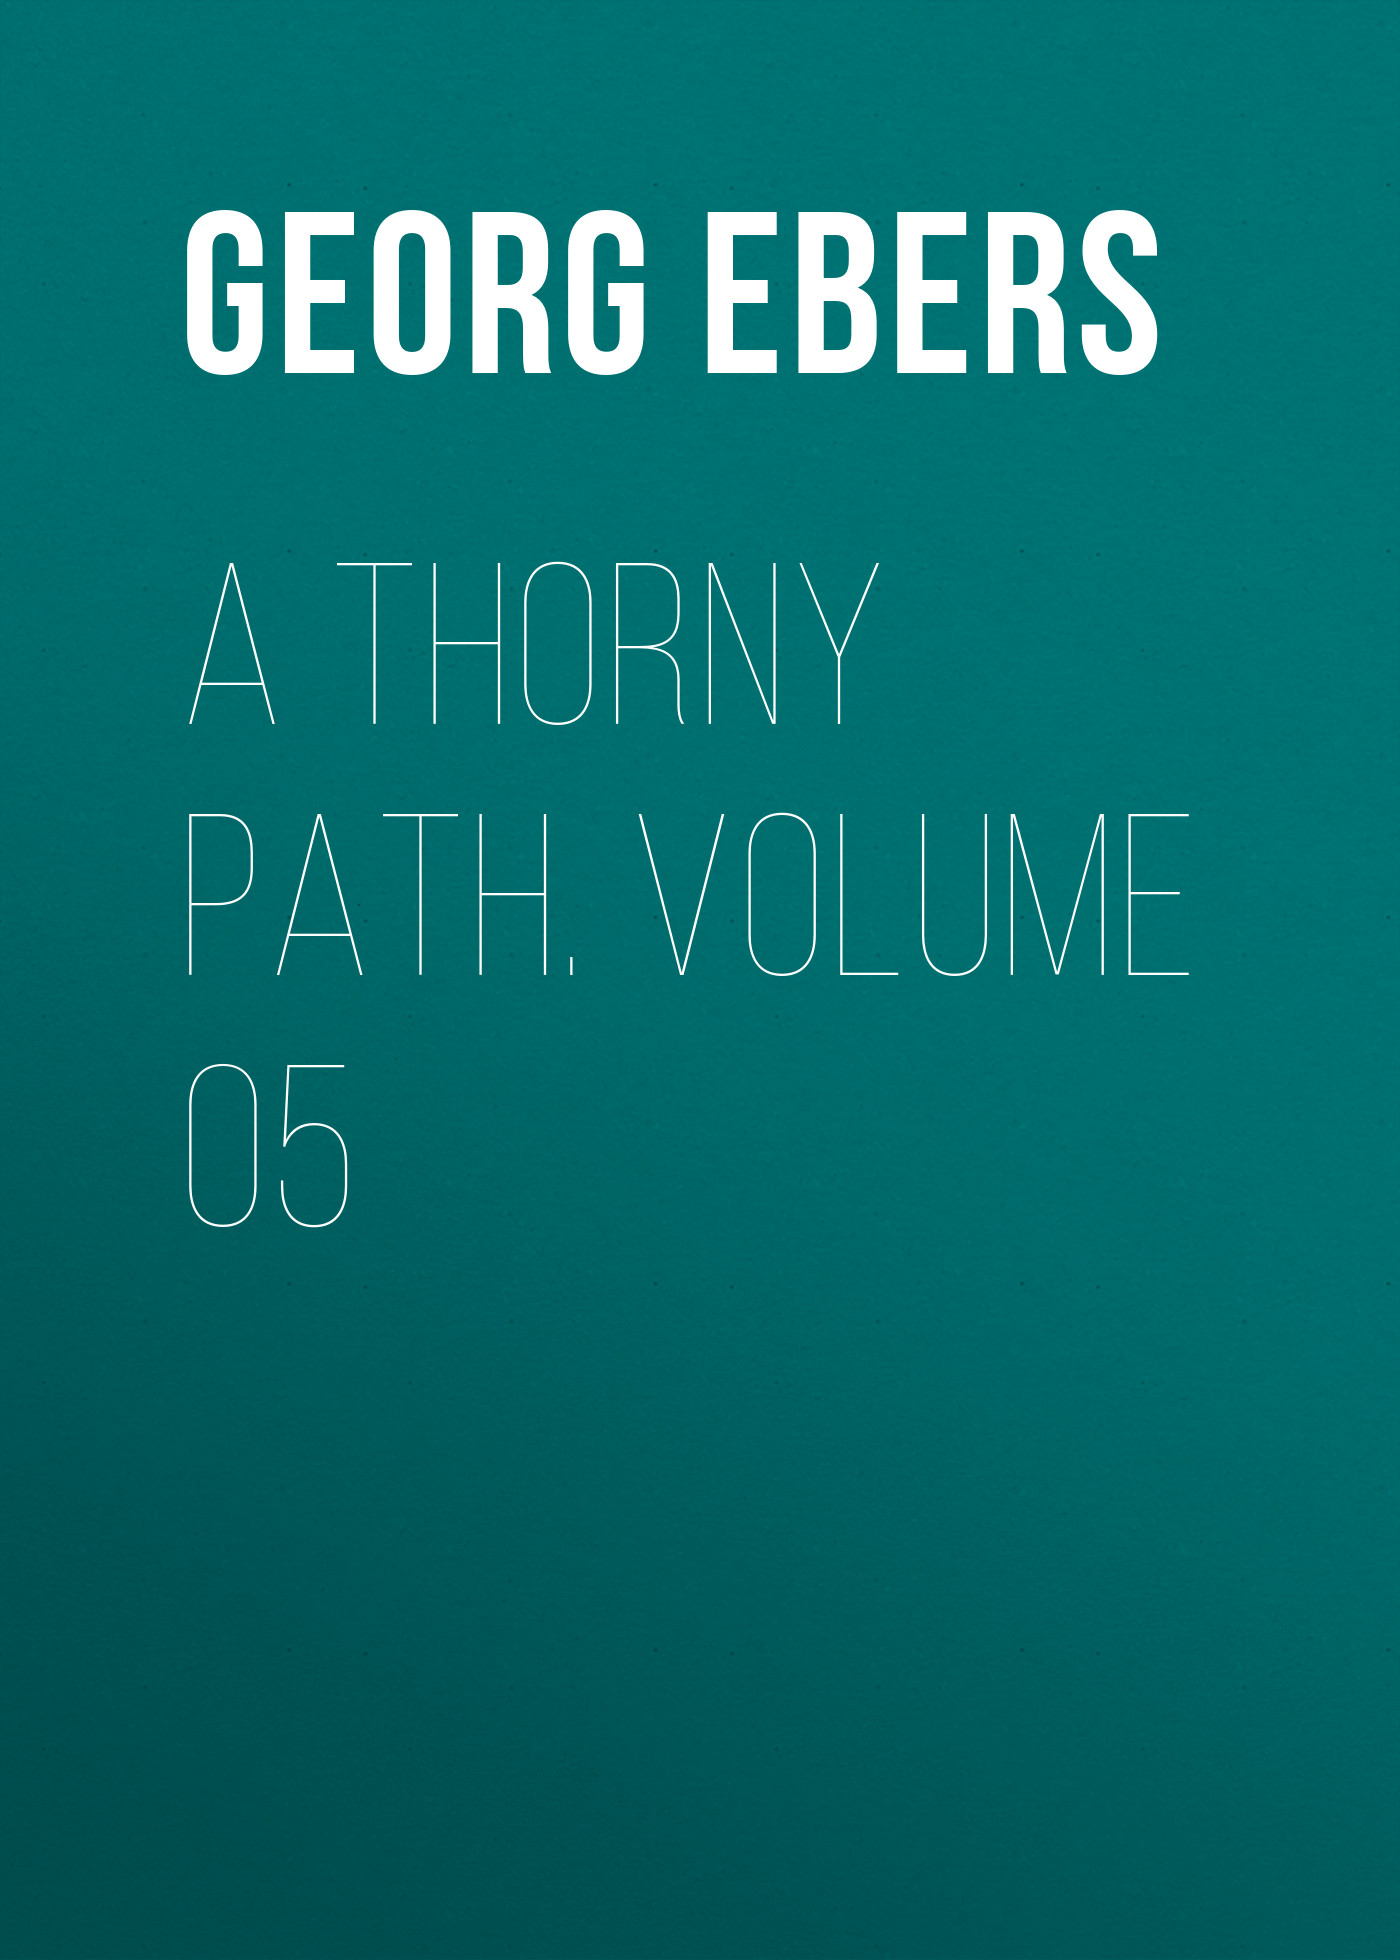 Georg Ebers A Thorny Path. Volume 05